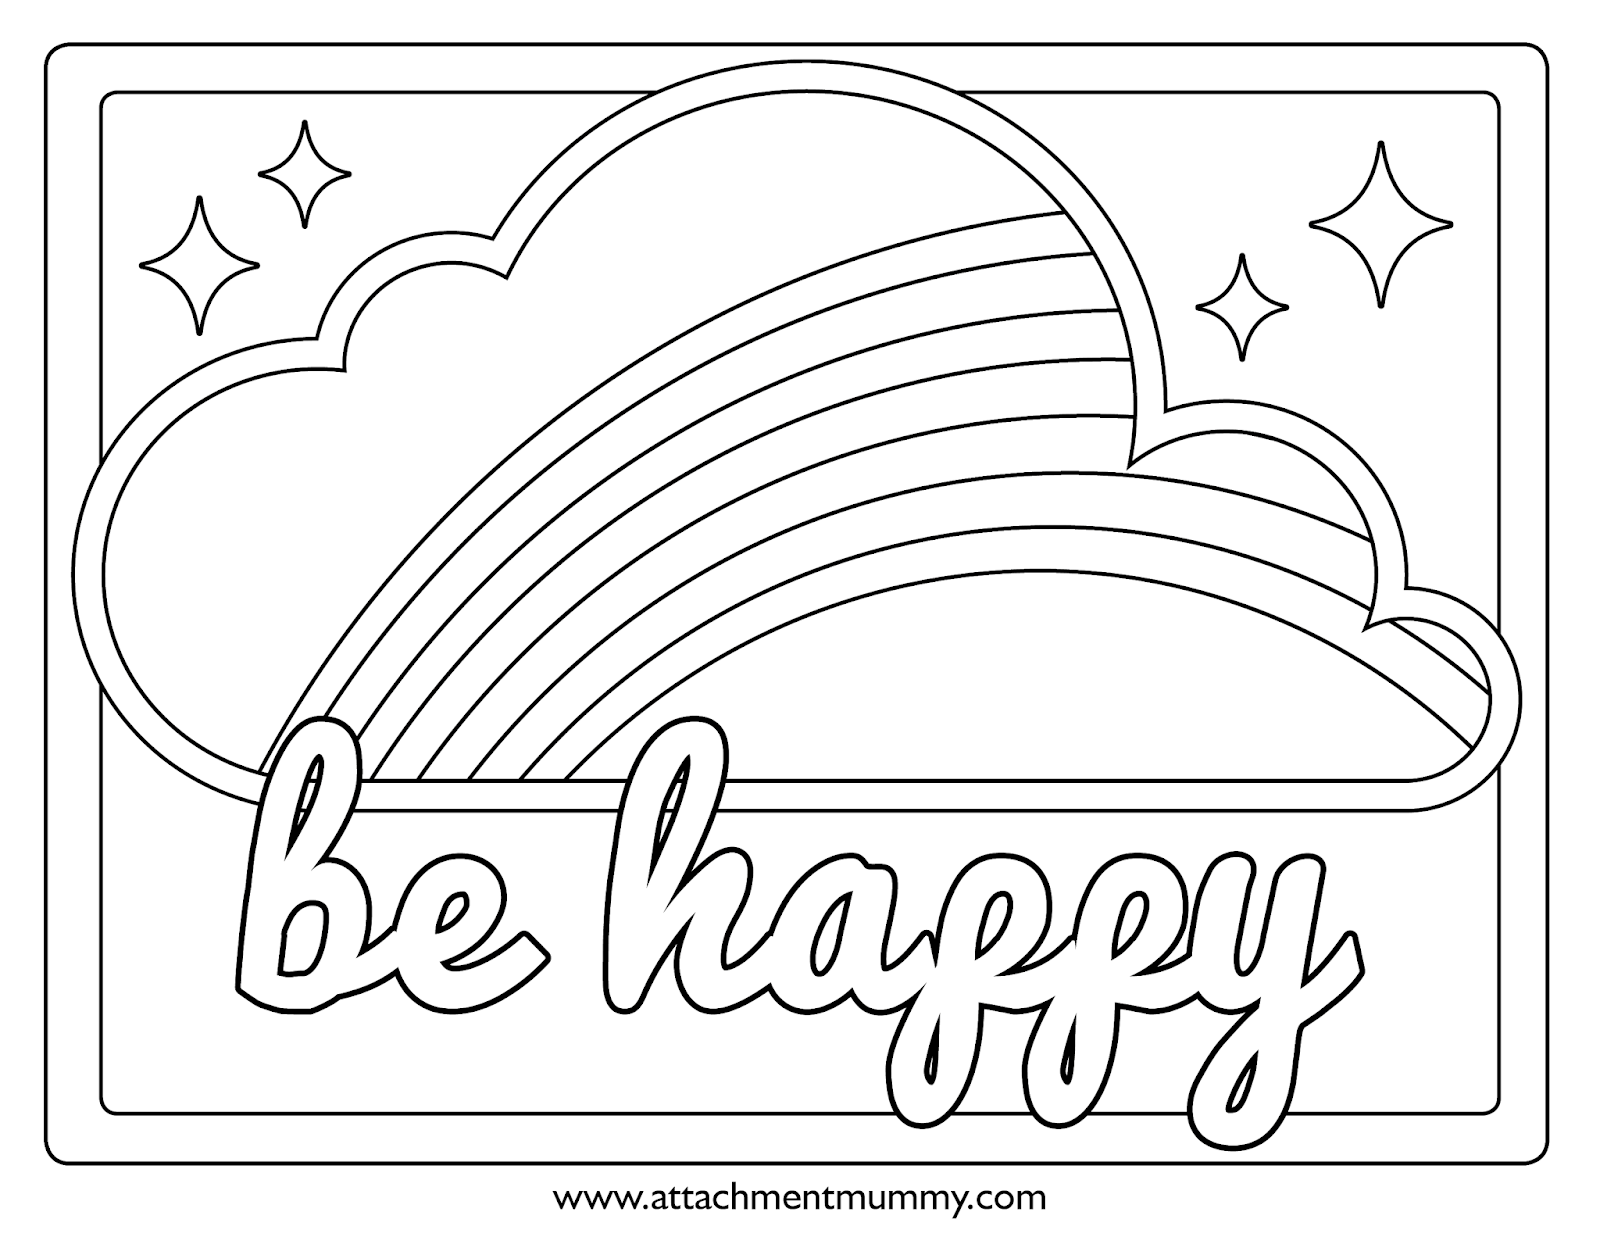 Free Rainbow Colouring Poster Printable